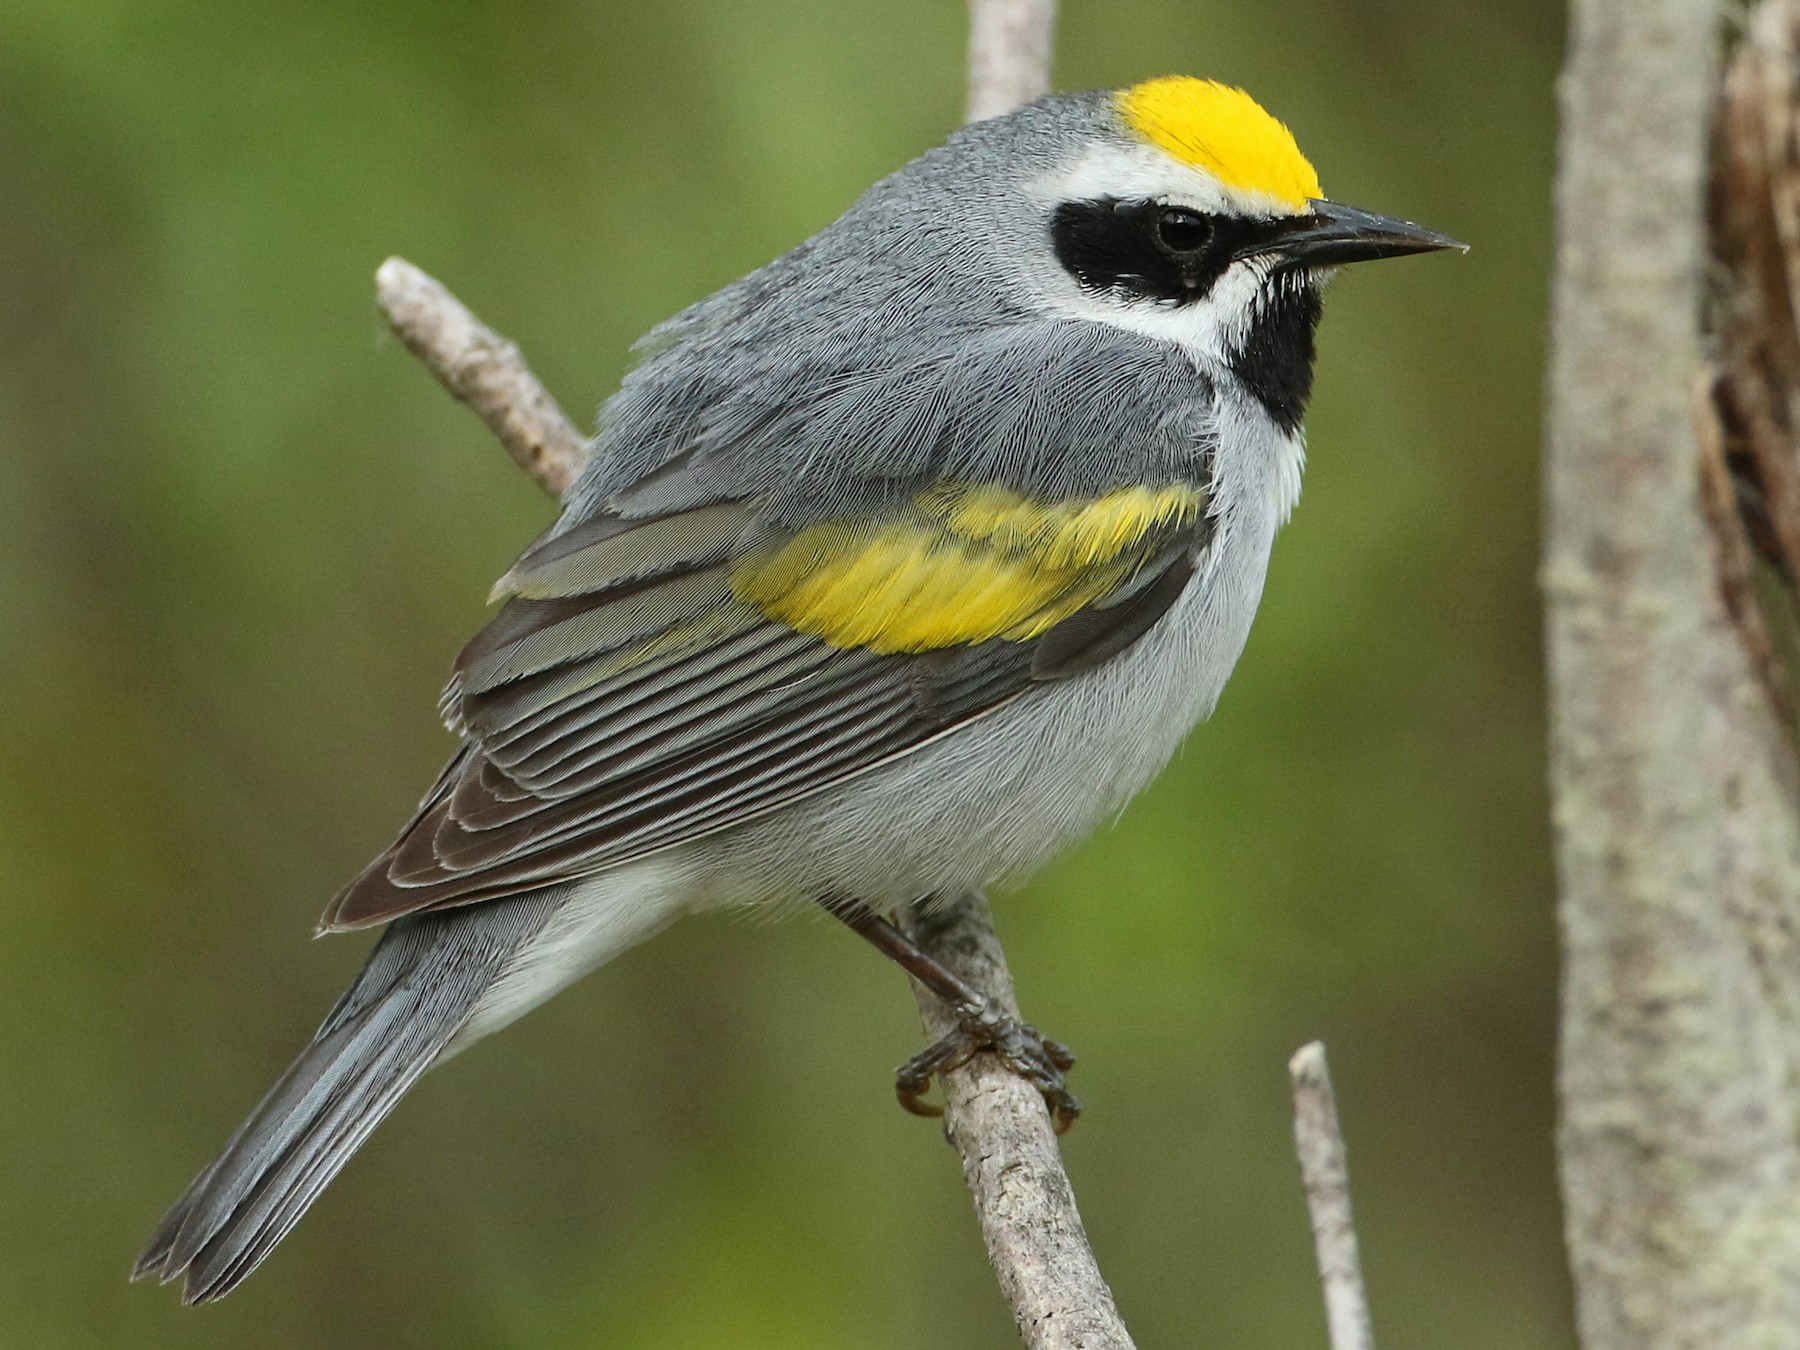 Golden-winged Warbler - Luke Seitz